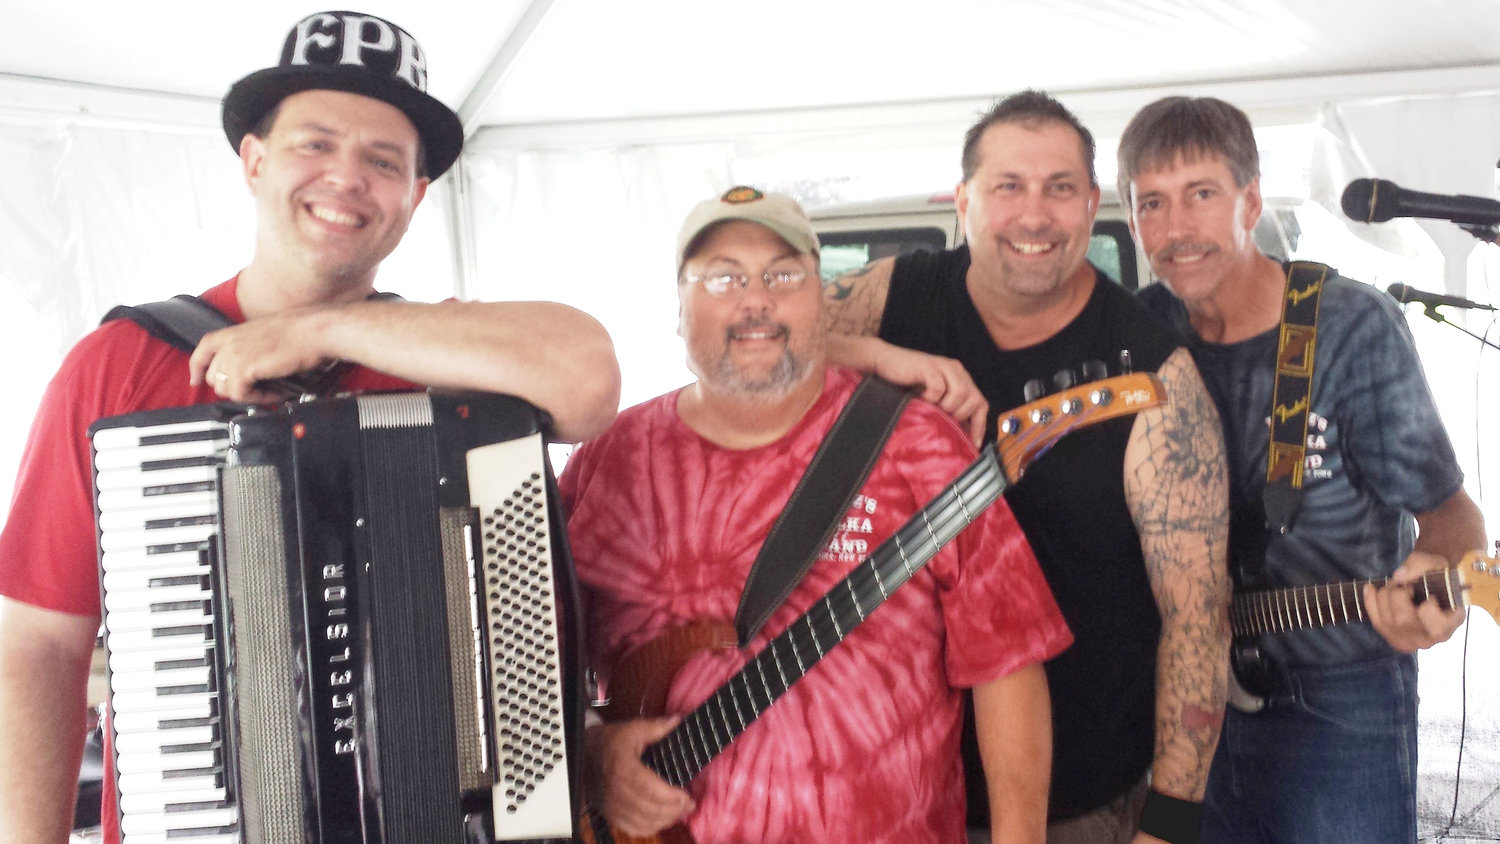 NOMINATED — Fritz's Polka Band from Verona has been nominated for several national awards by the Cleveland-Style Polka Hall of Fame in Euclid, Ohio.